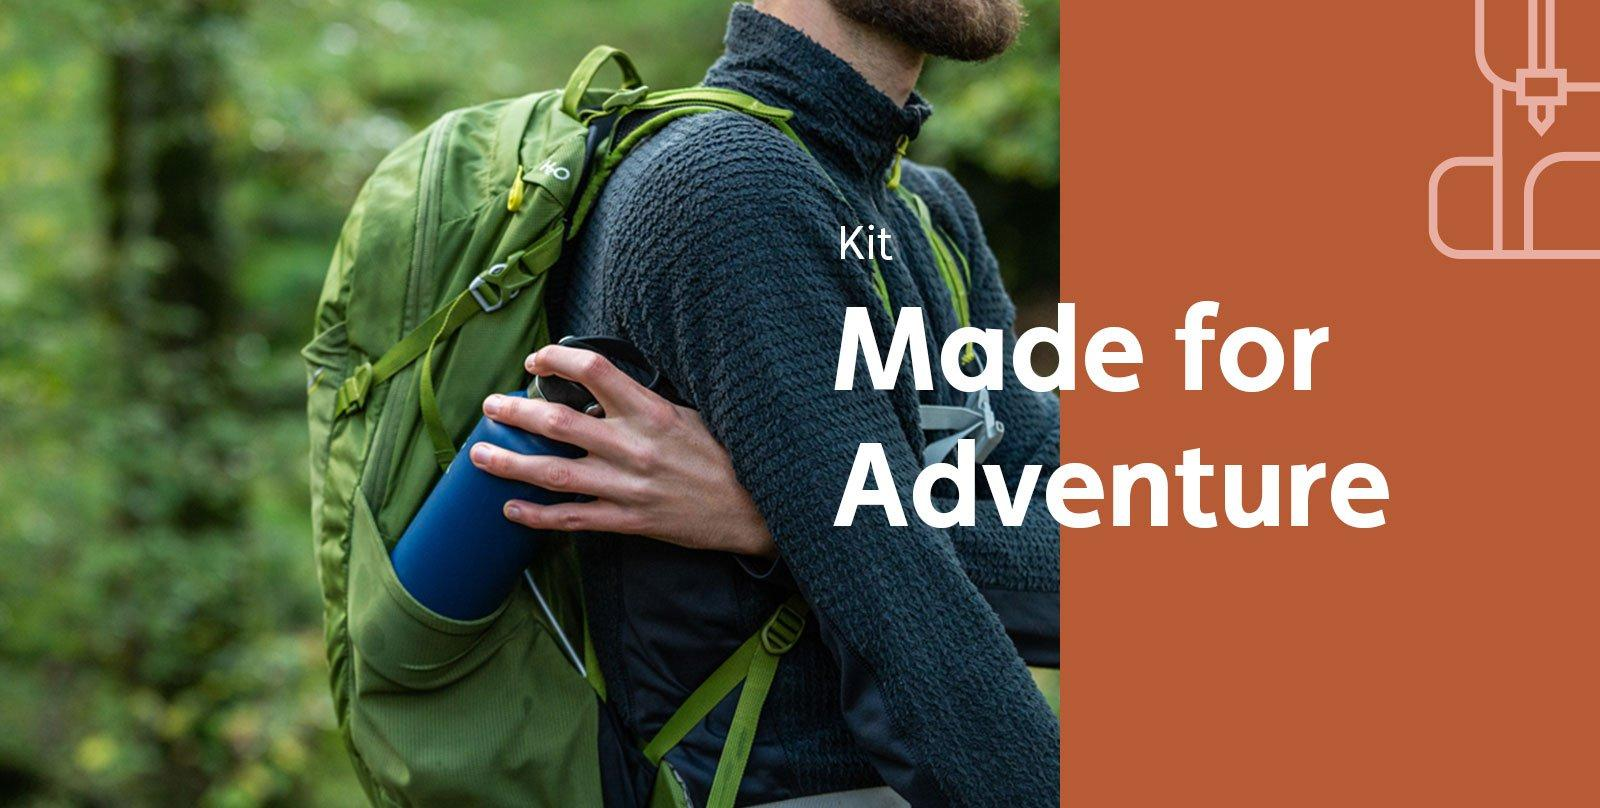 Kit Made for Adventure